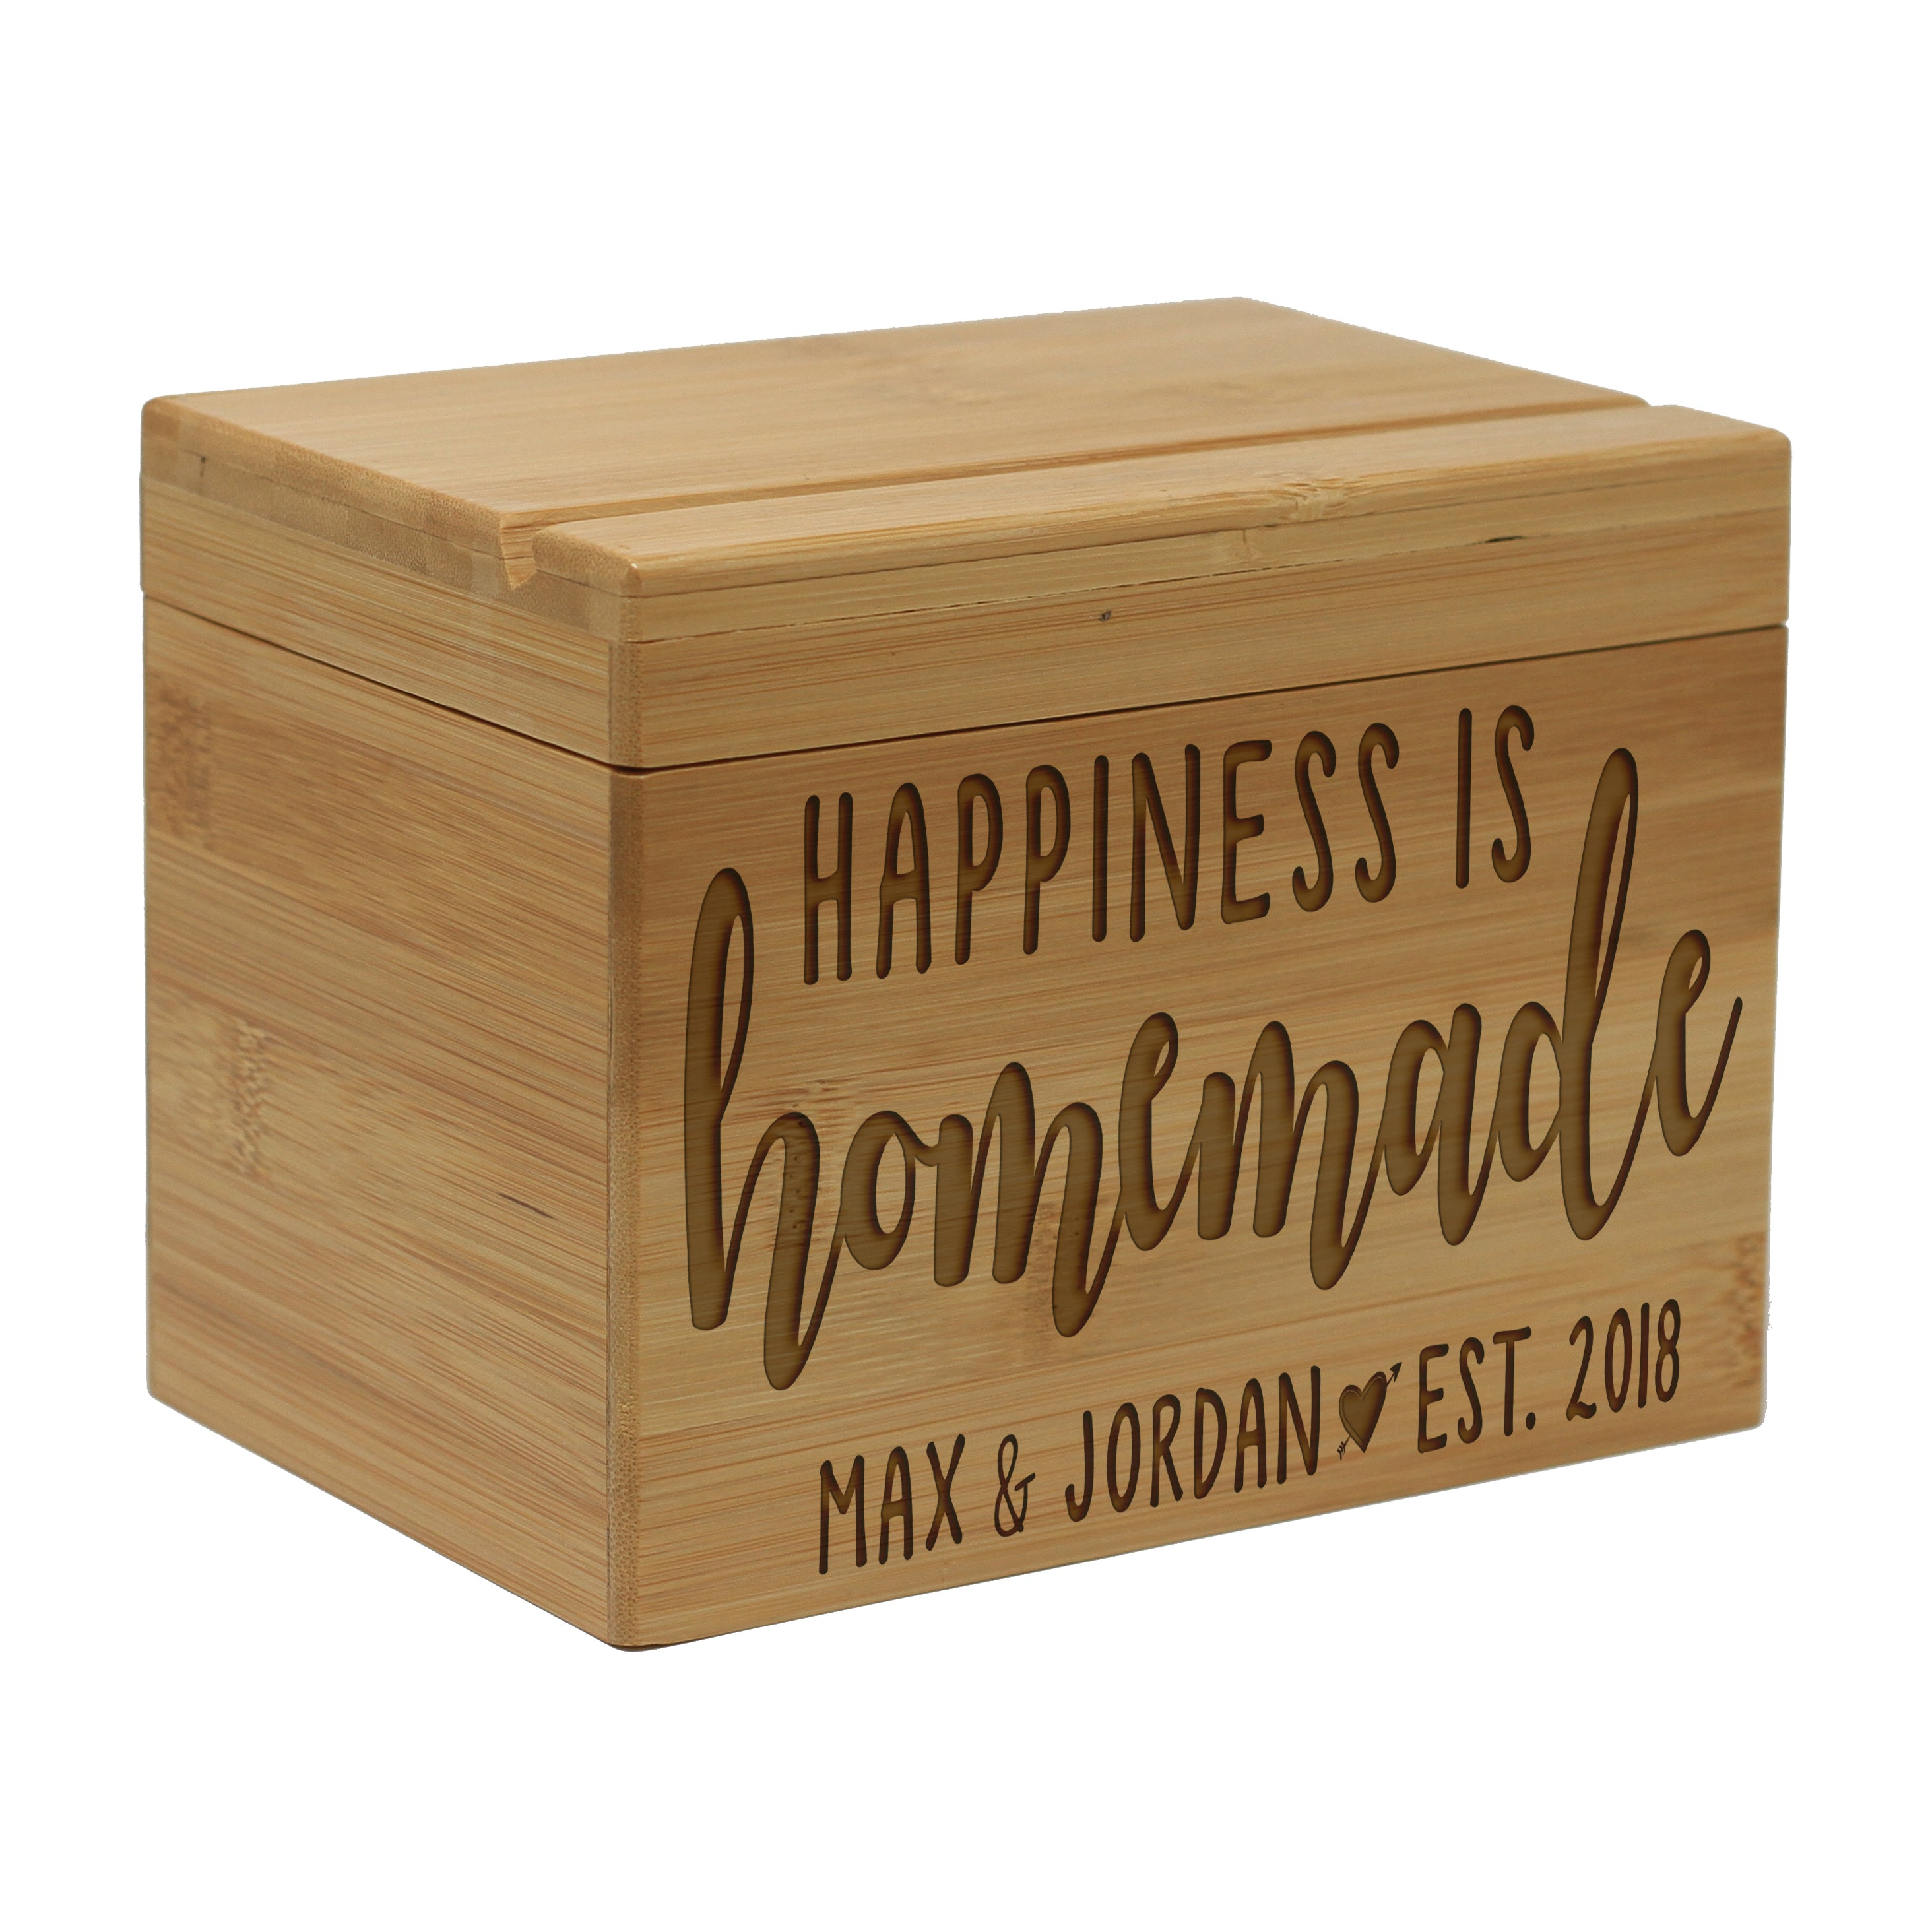 Personalized Recipe Box Engraved Recipe Box Custom Happiness Is Handmade Personalized Recipe Box